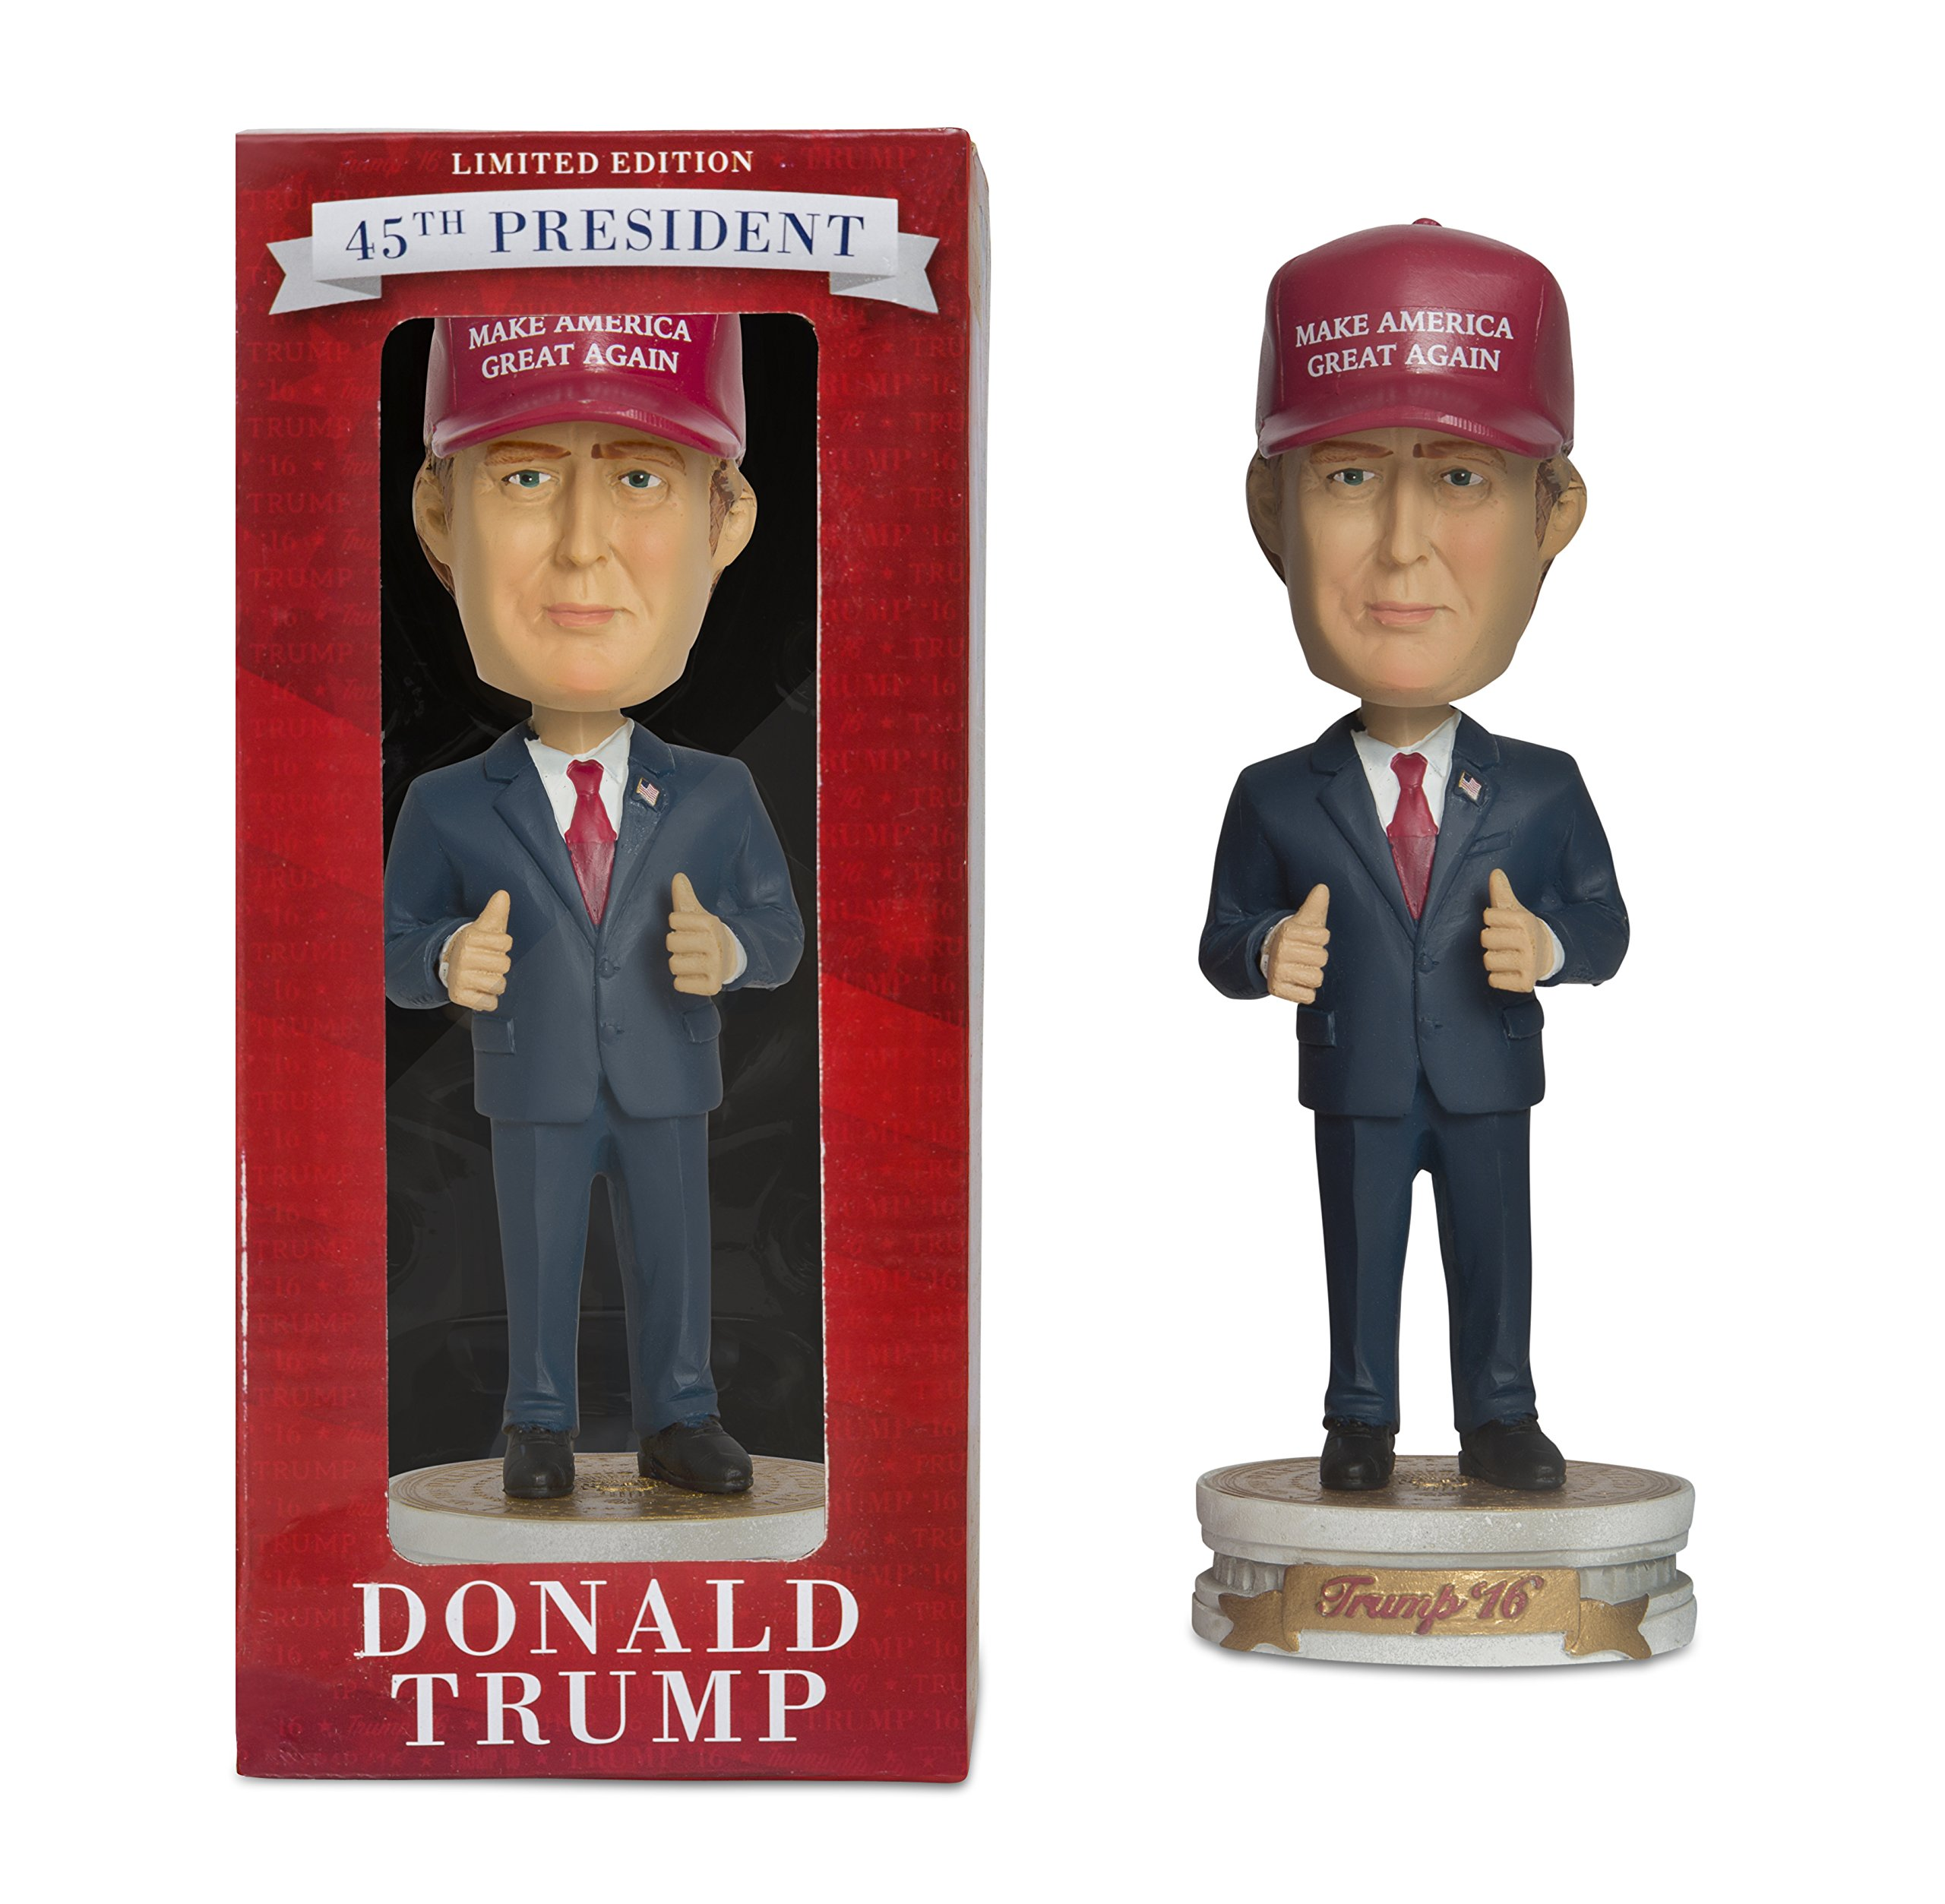 PLAN P2 PROMOTIONS Donald Trump Bobblehead, Make America...